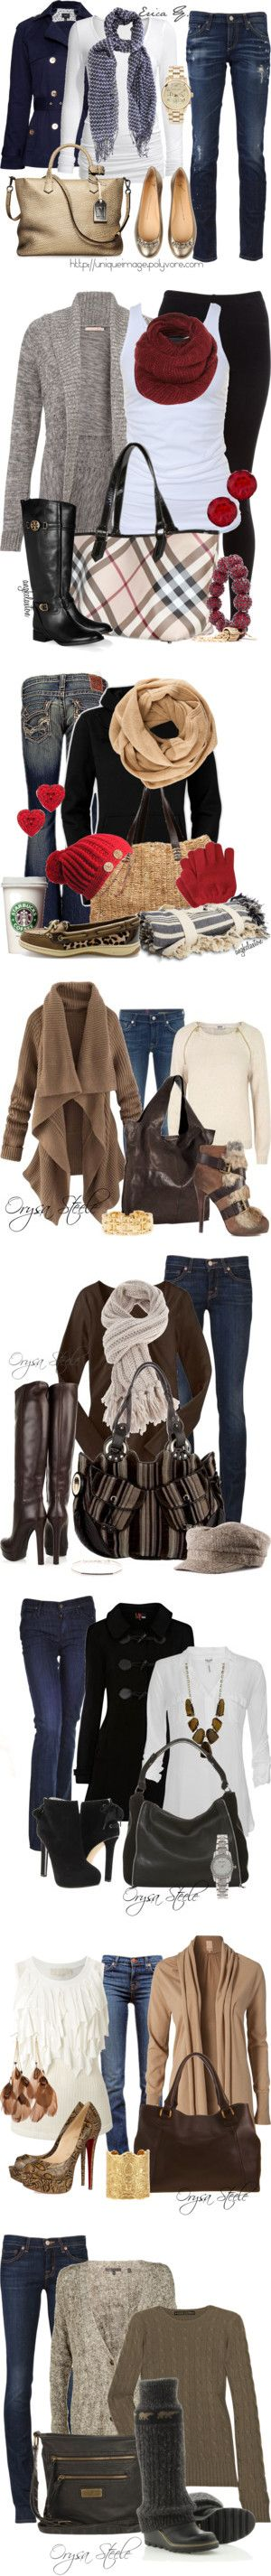 Winter style which are great